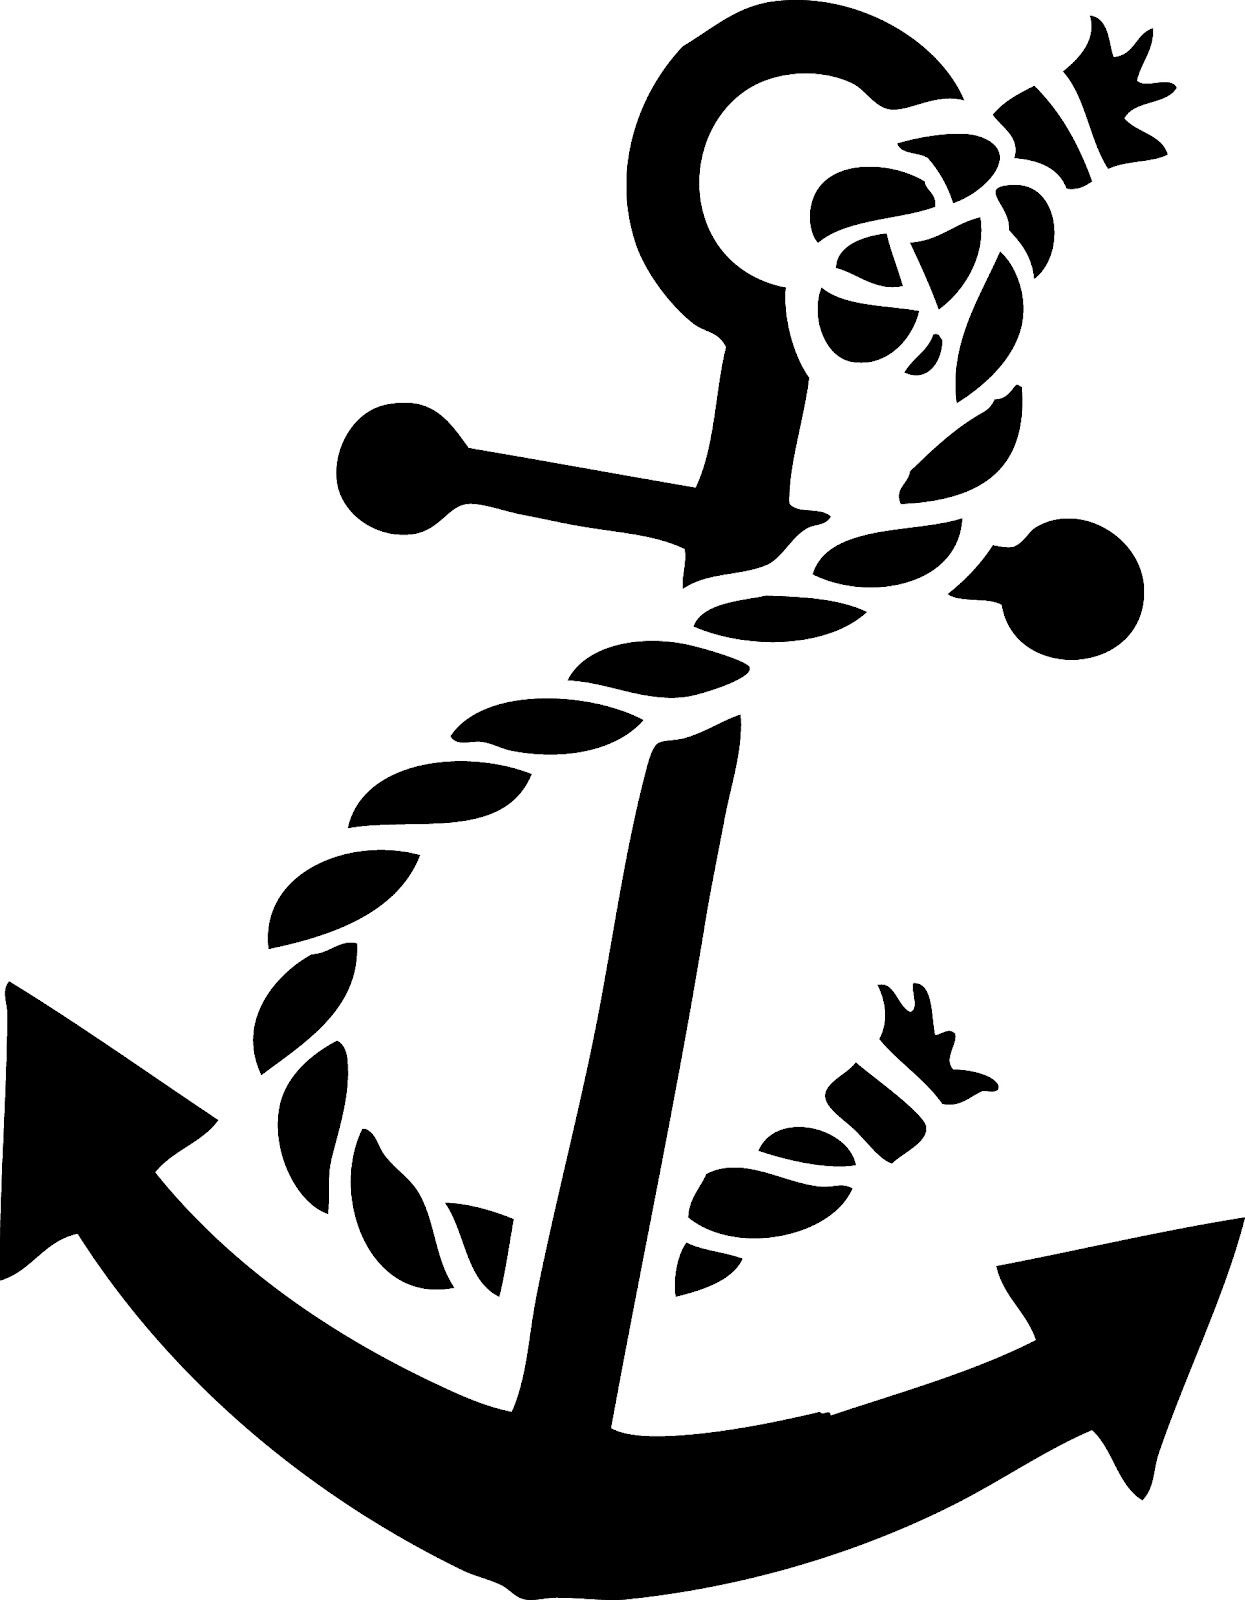 Anchor With Rope Silhouette.